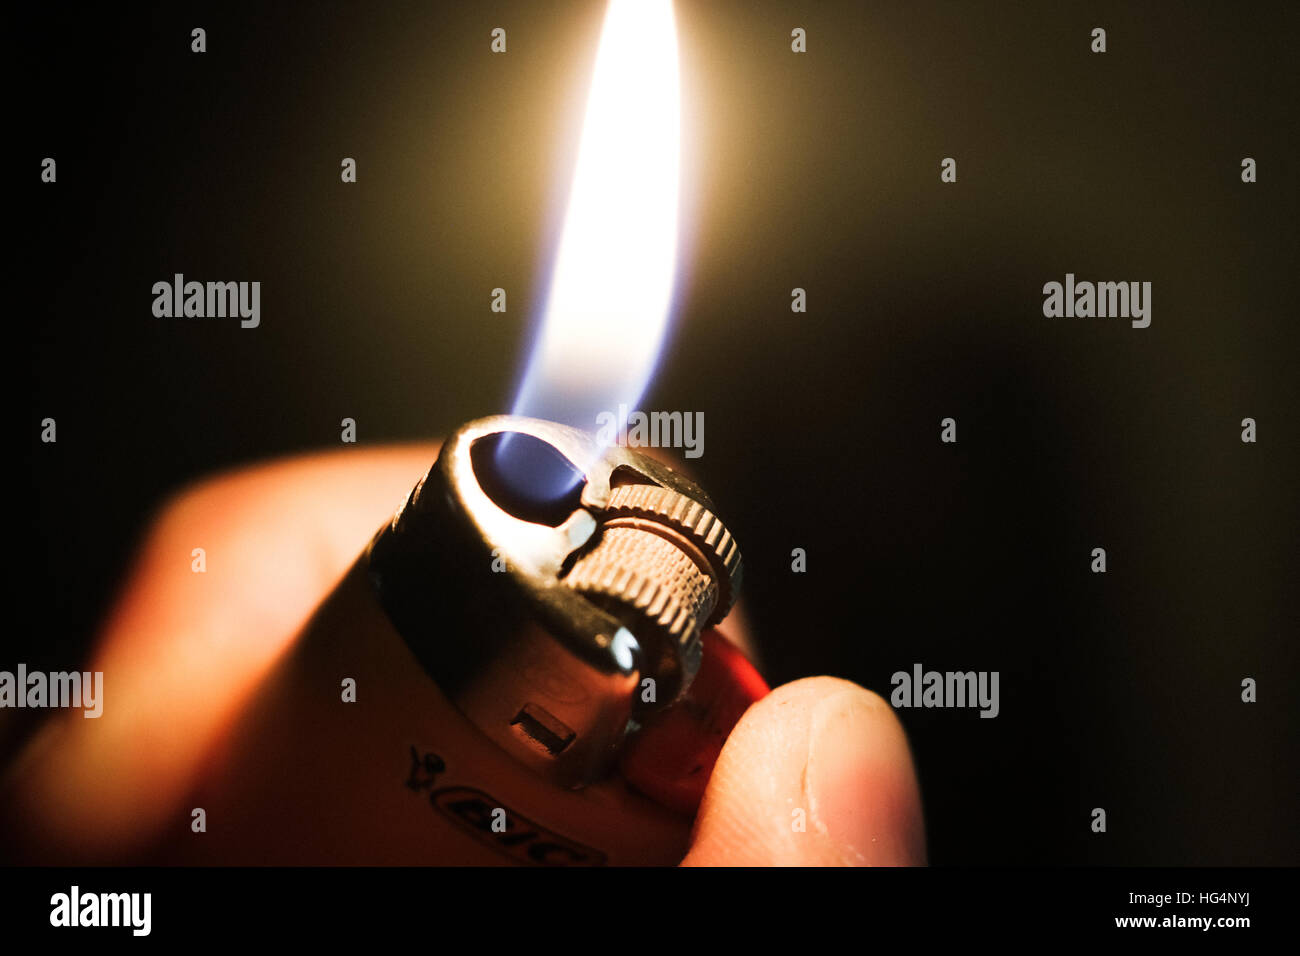 A Lighter - Stock Image